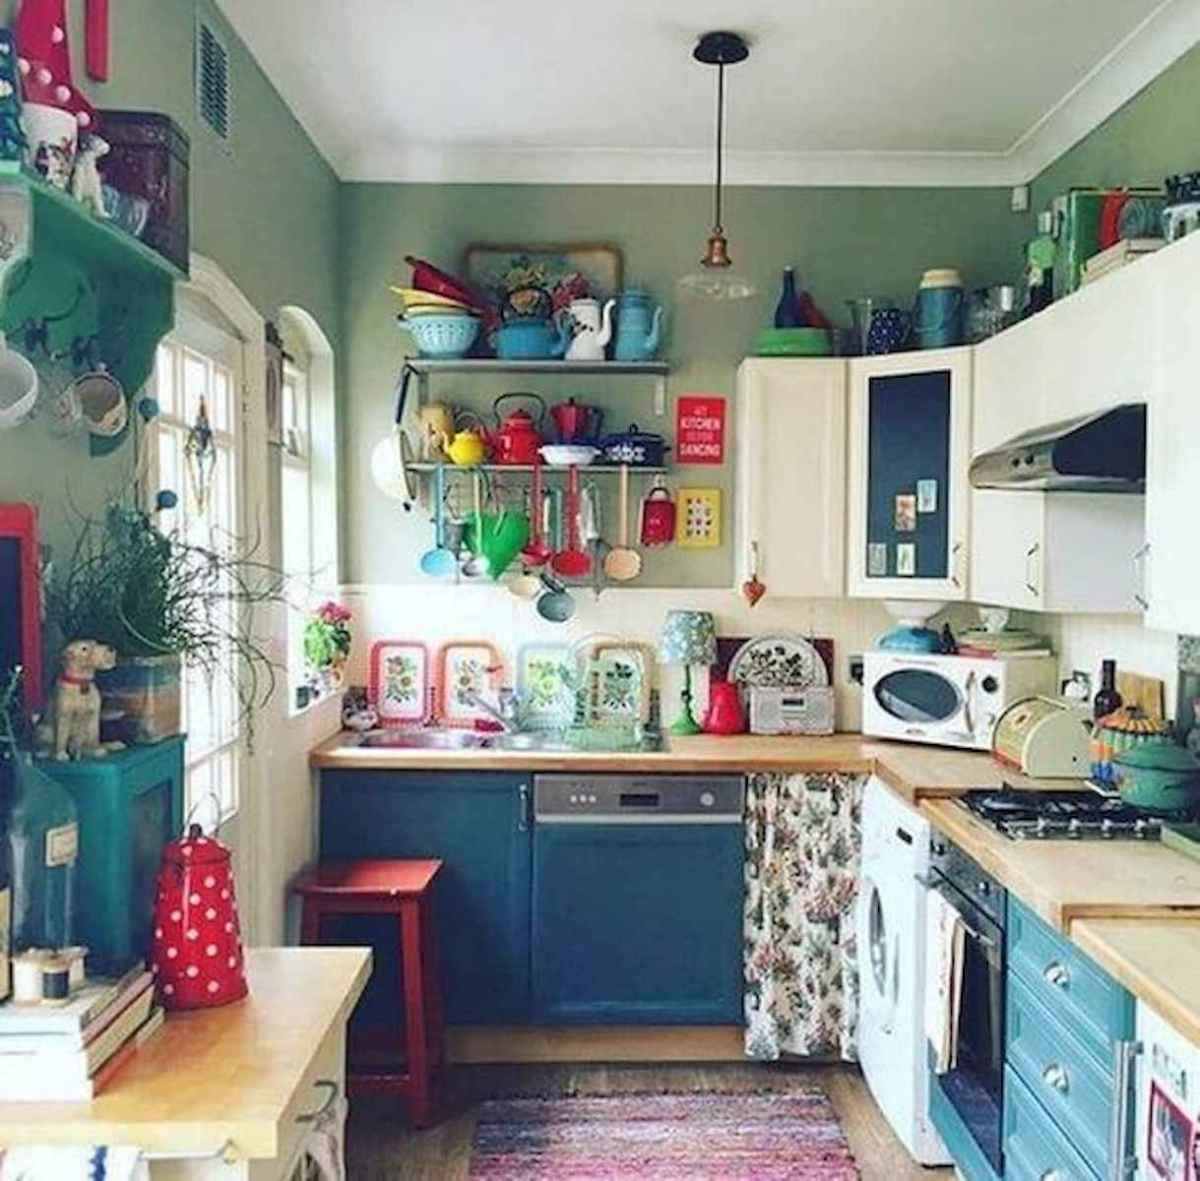 80+ Favorite Colorful Kitchen Decor Ideas And Remodel for Summer Project (41)